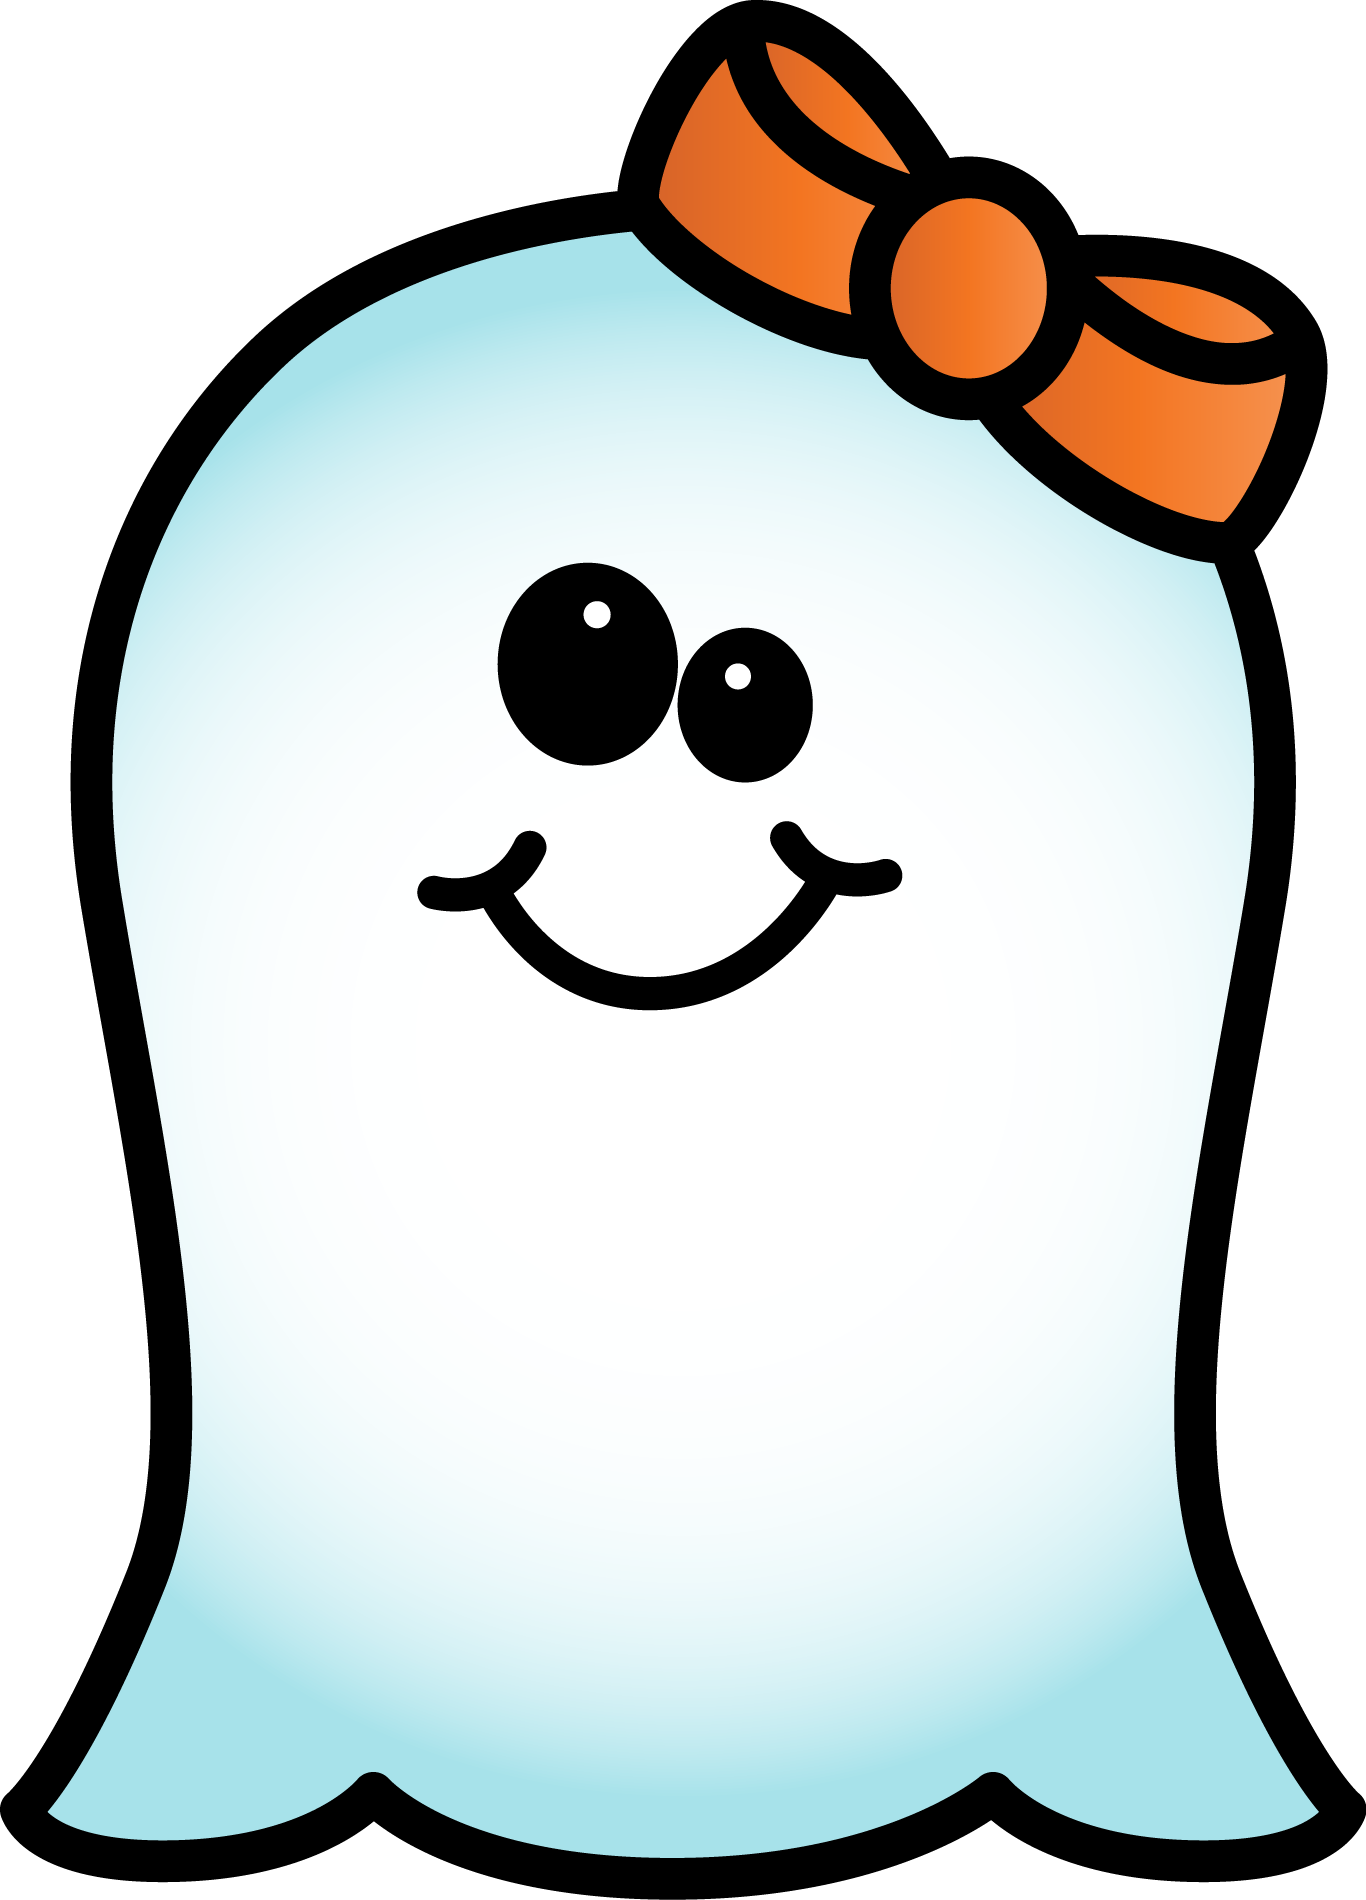 Pin By Tonya Lambert On Halloween In 2020 With Images Cute Ghost